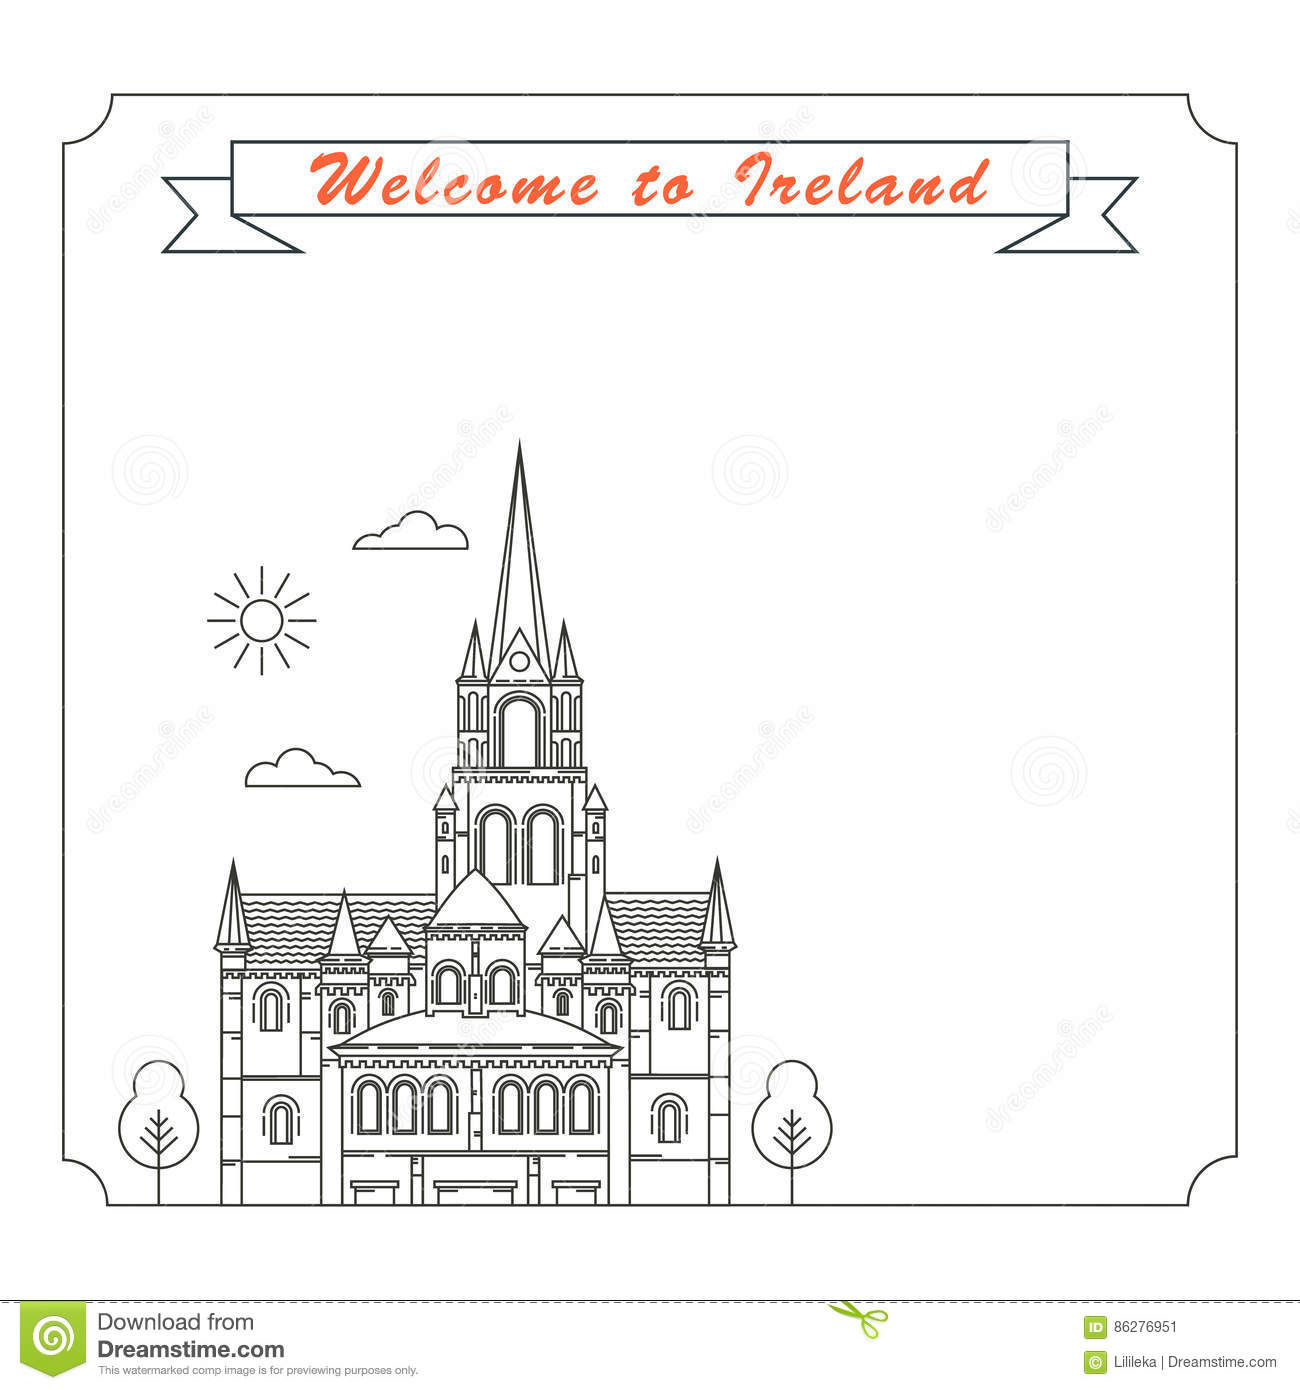 Frame With Symbols Of Ireland Stock Vector - Illustration of travel ...